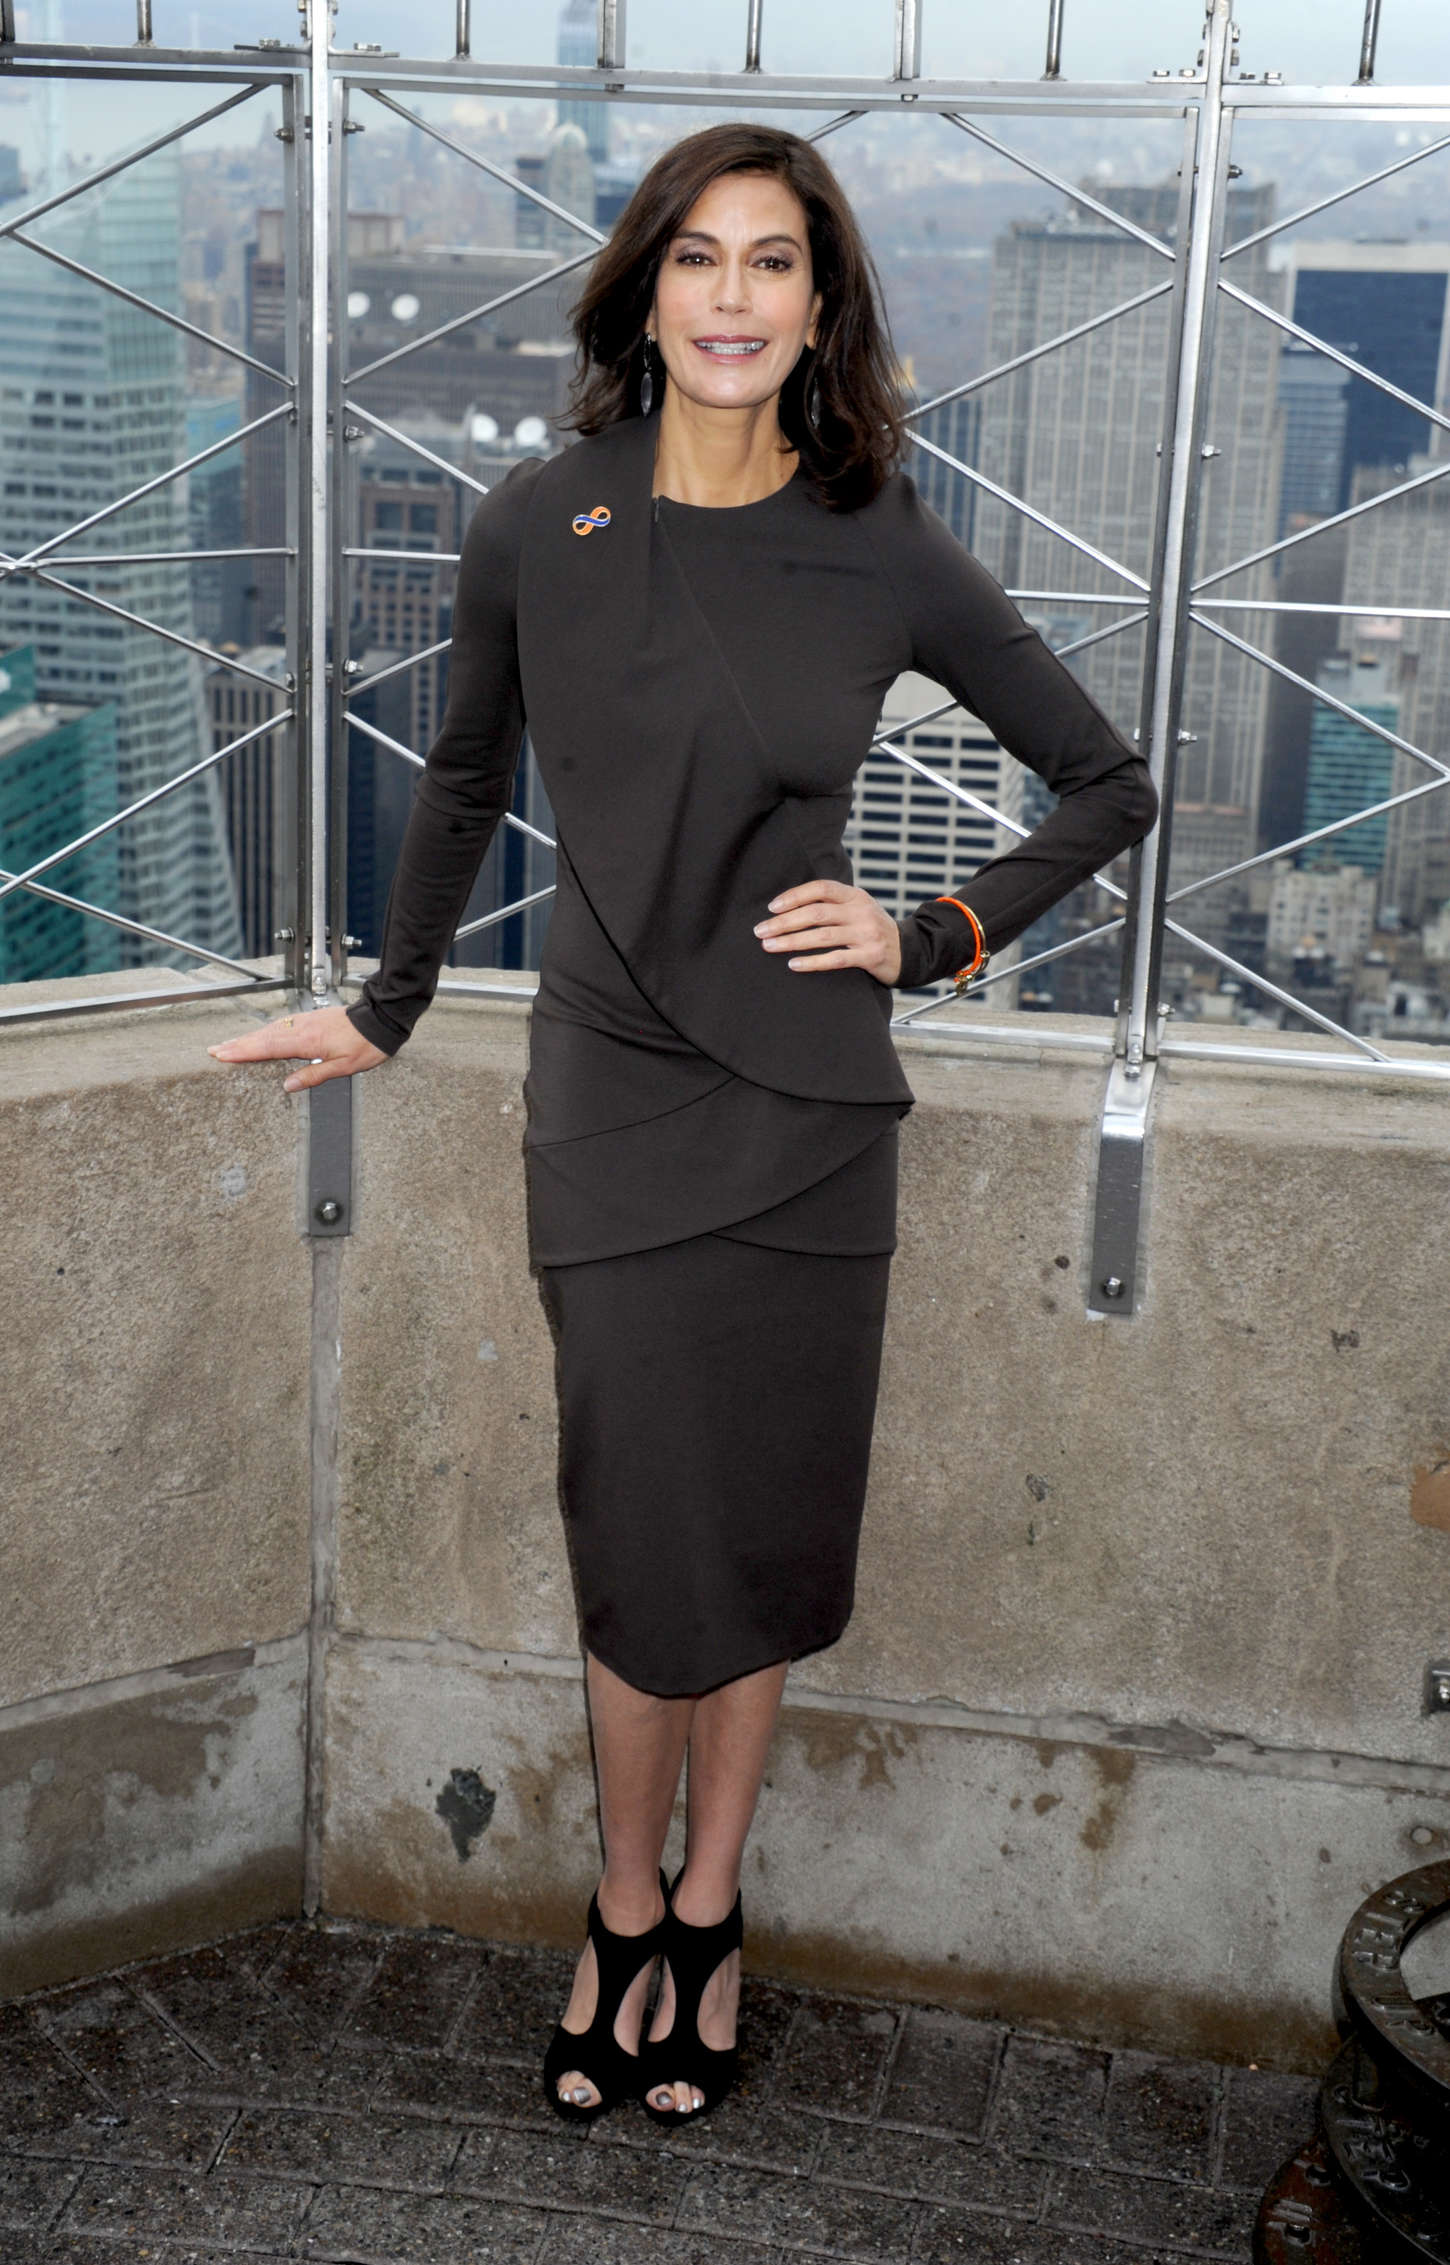 Teri Hatcher Lights The Empire State Building In New